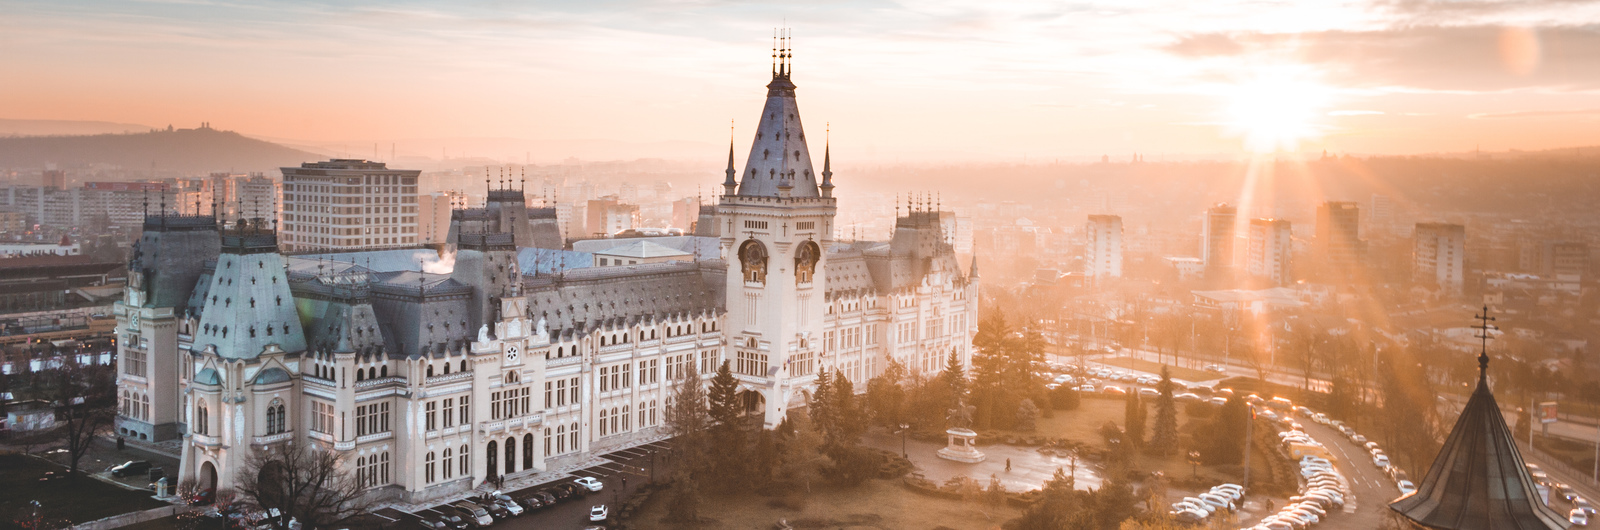 iasi city header